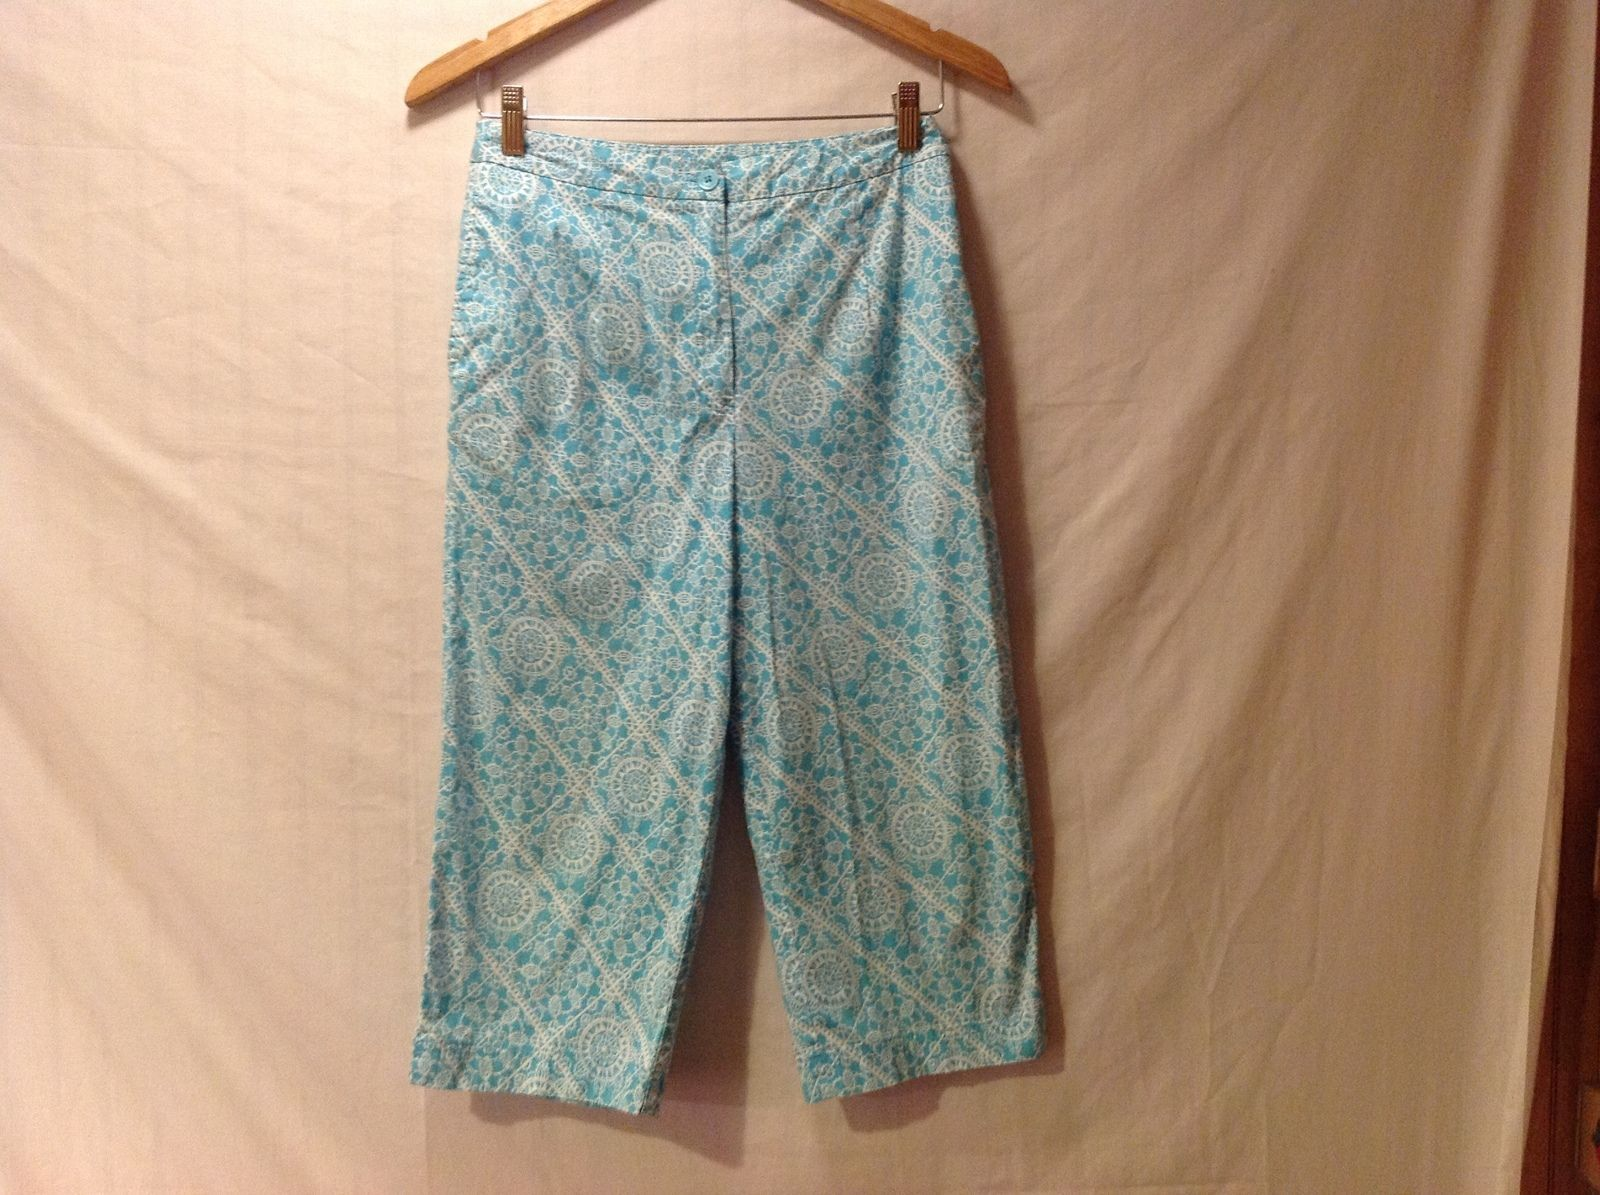 Talbots Woman Petite Stretch Capris Size 8 aqua blue